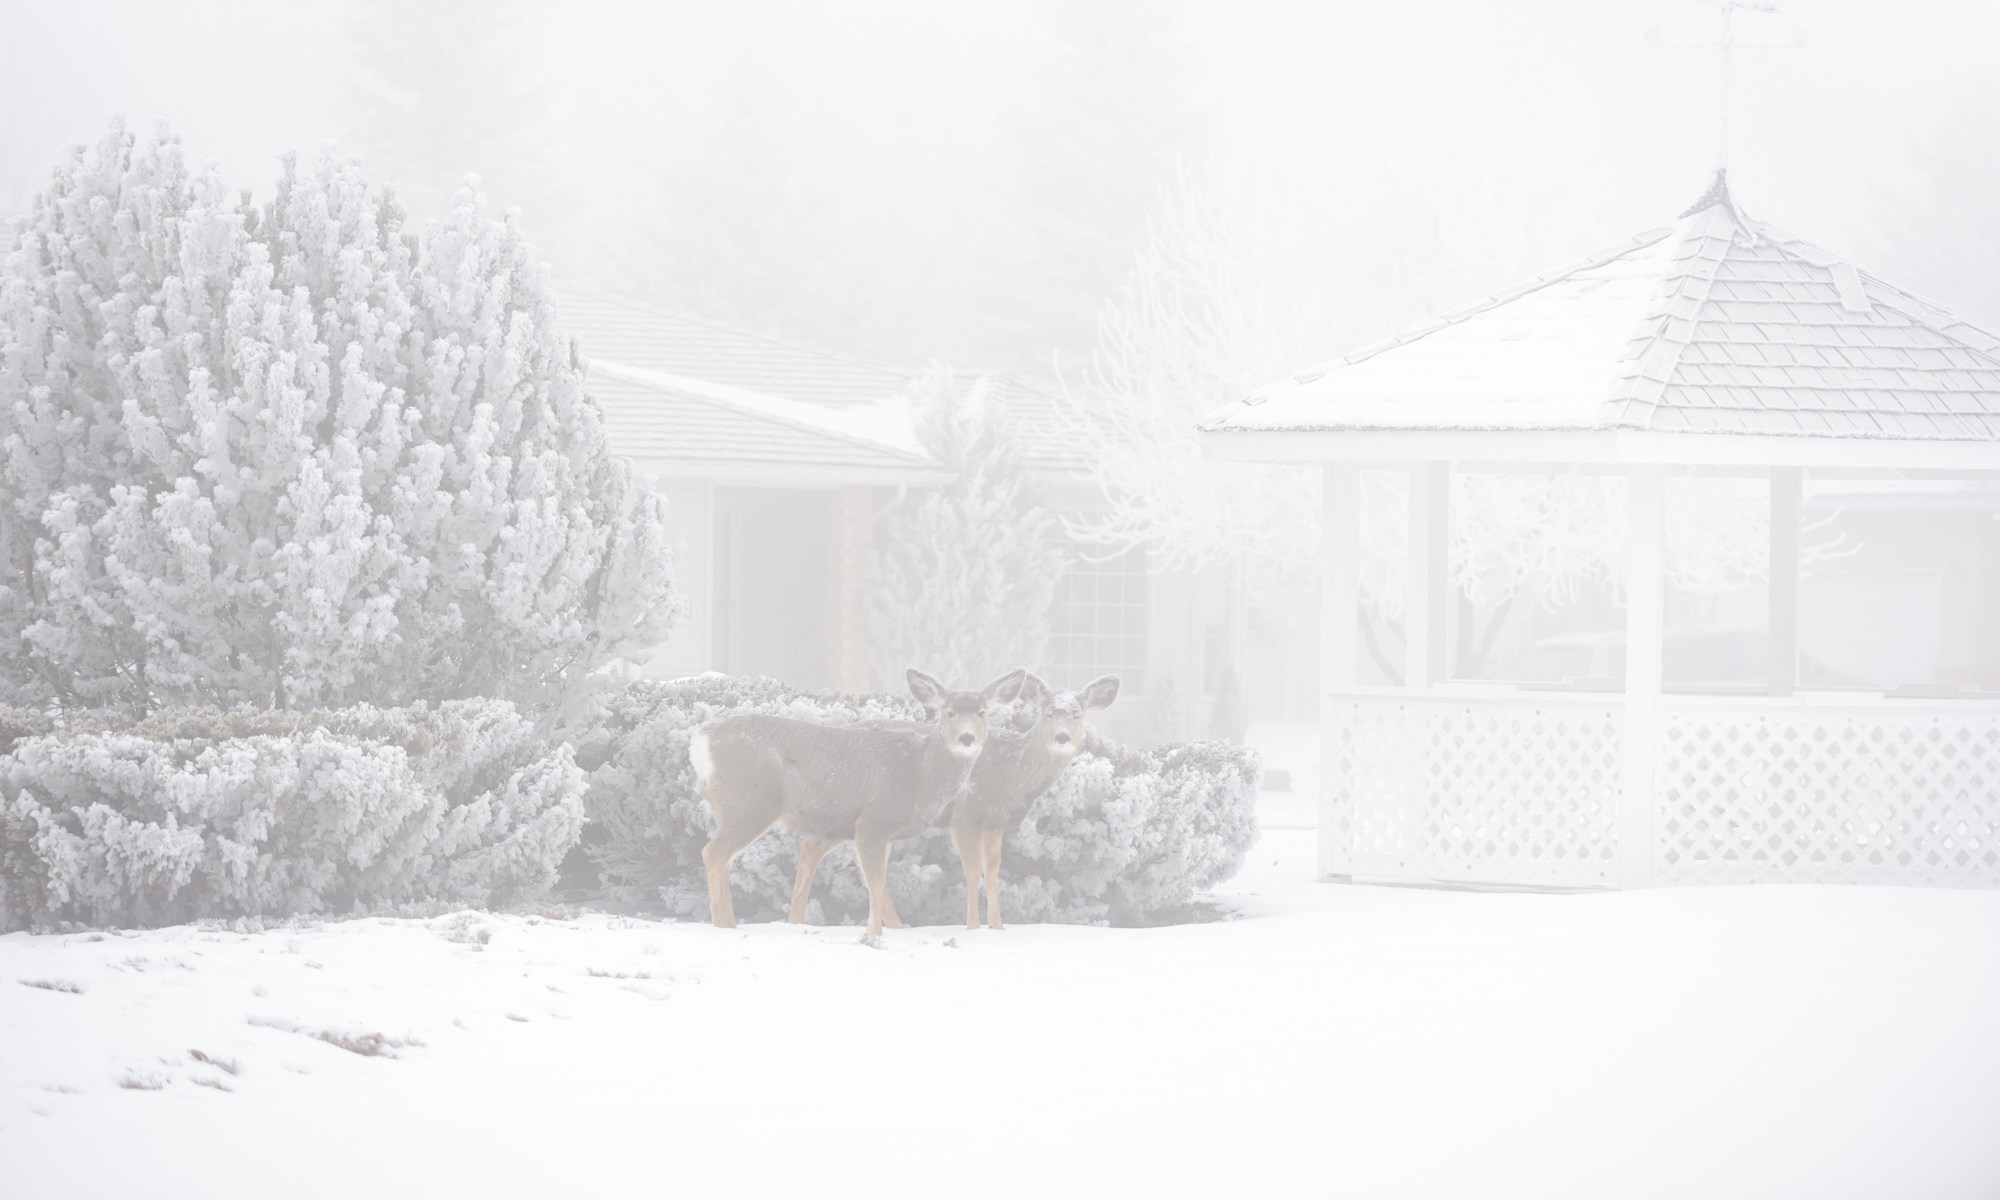 Snowfall and deer